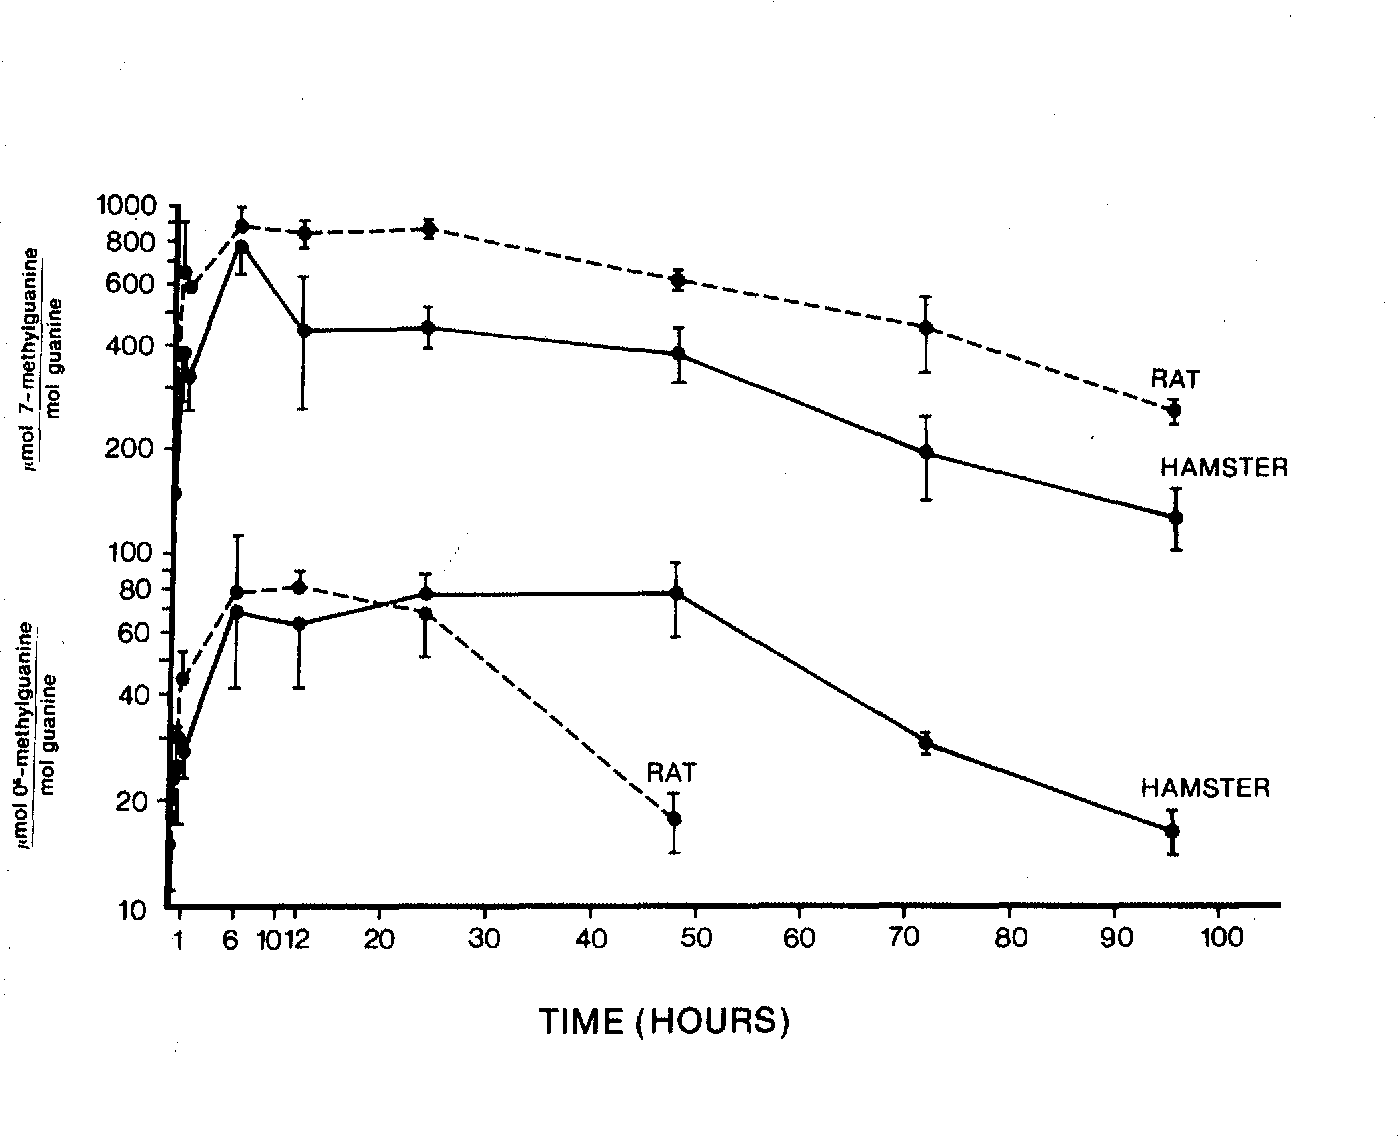 Figure 1. A semilogarithmic plot of methylguanine concentrations vs. time in order to demonstrate the rate of formation and persistence in rat and hamster liver DNA.